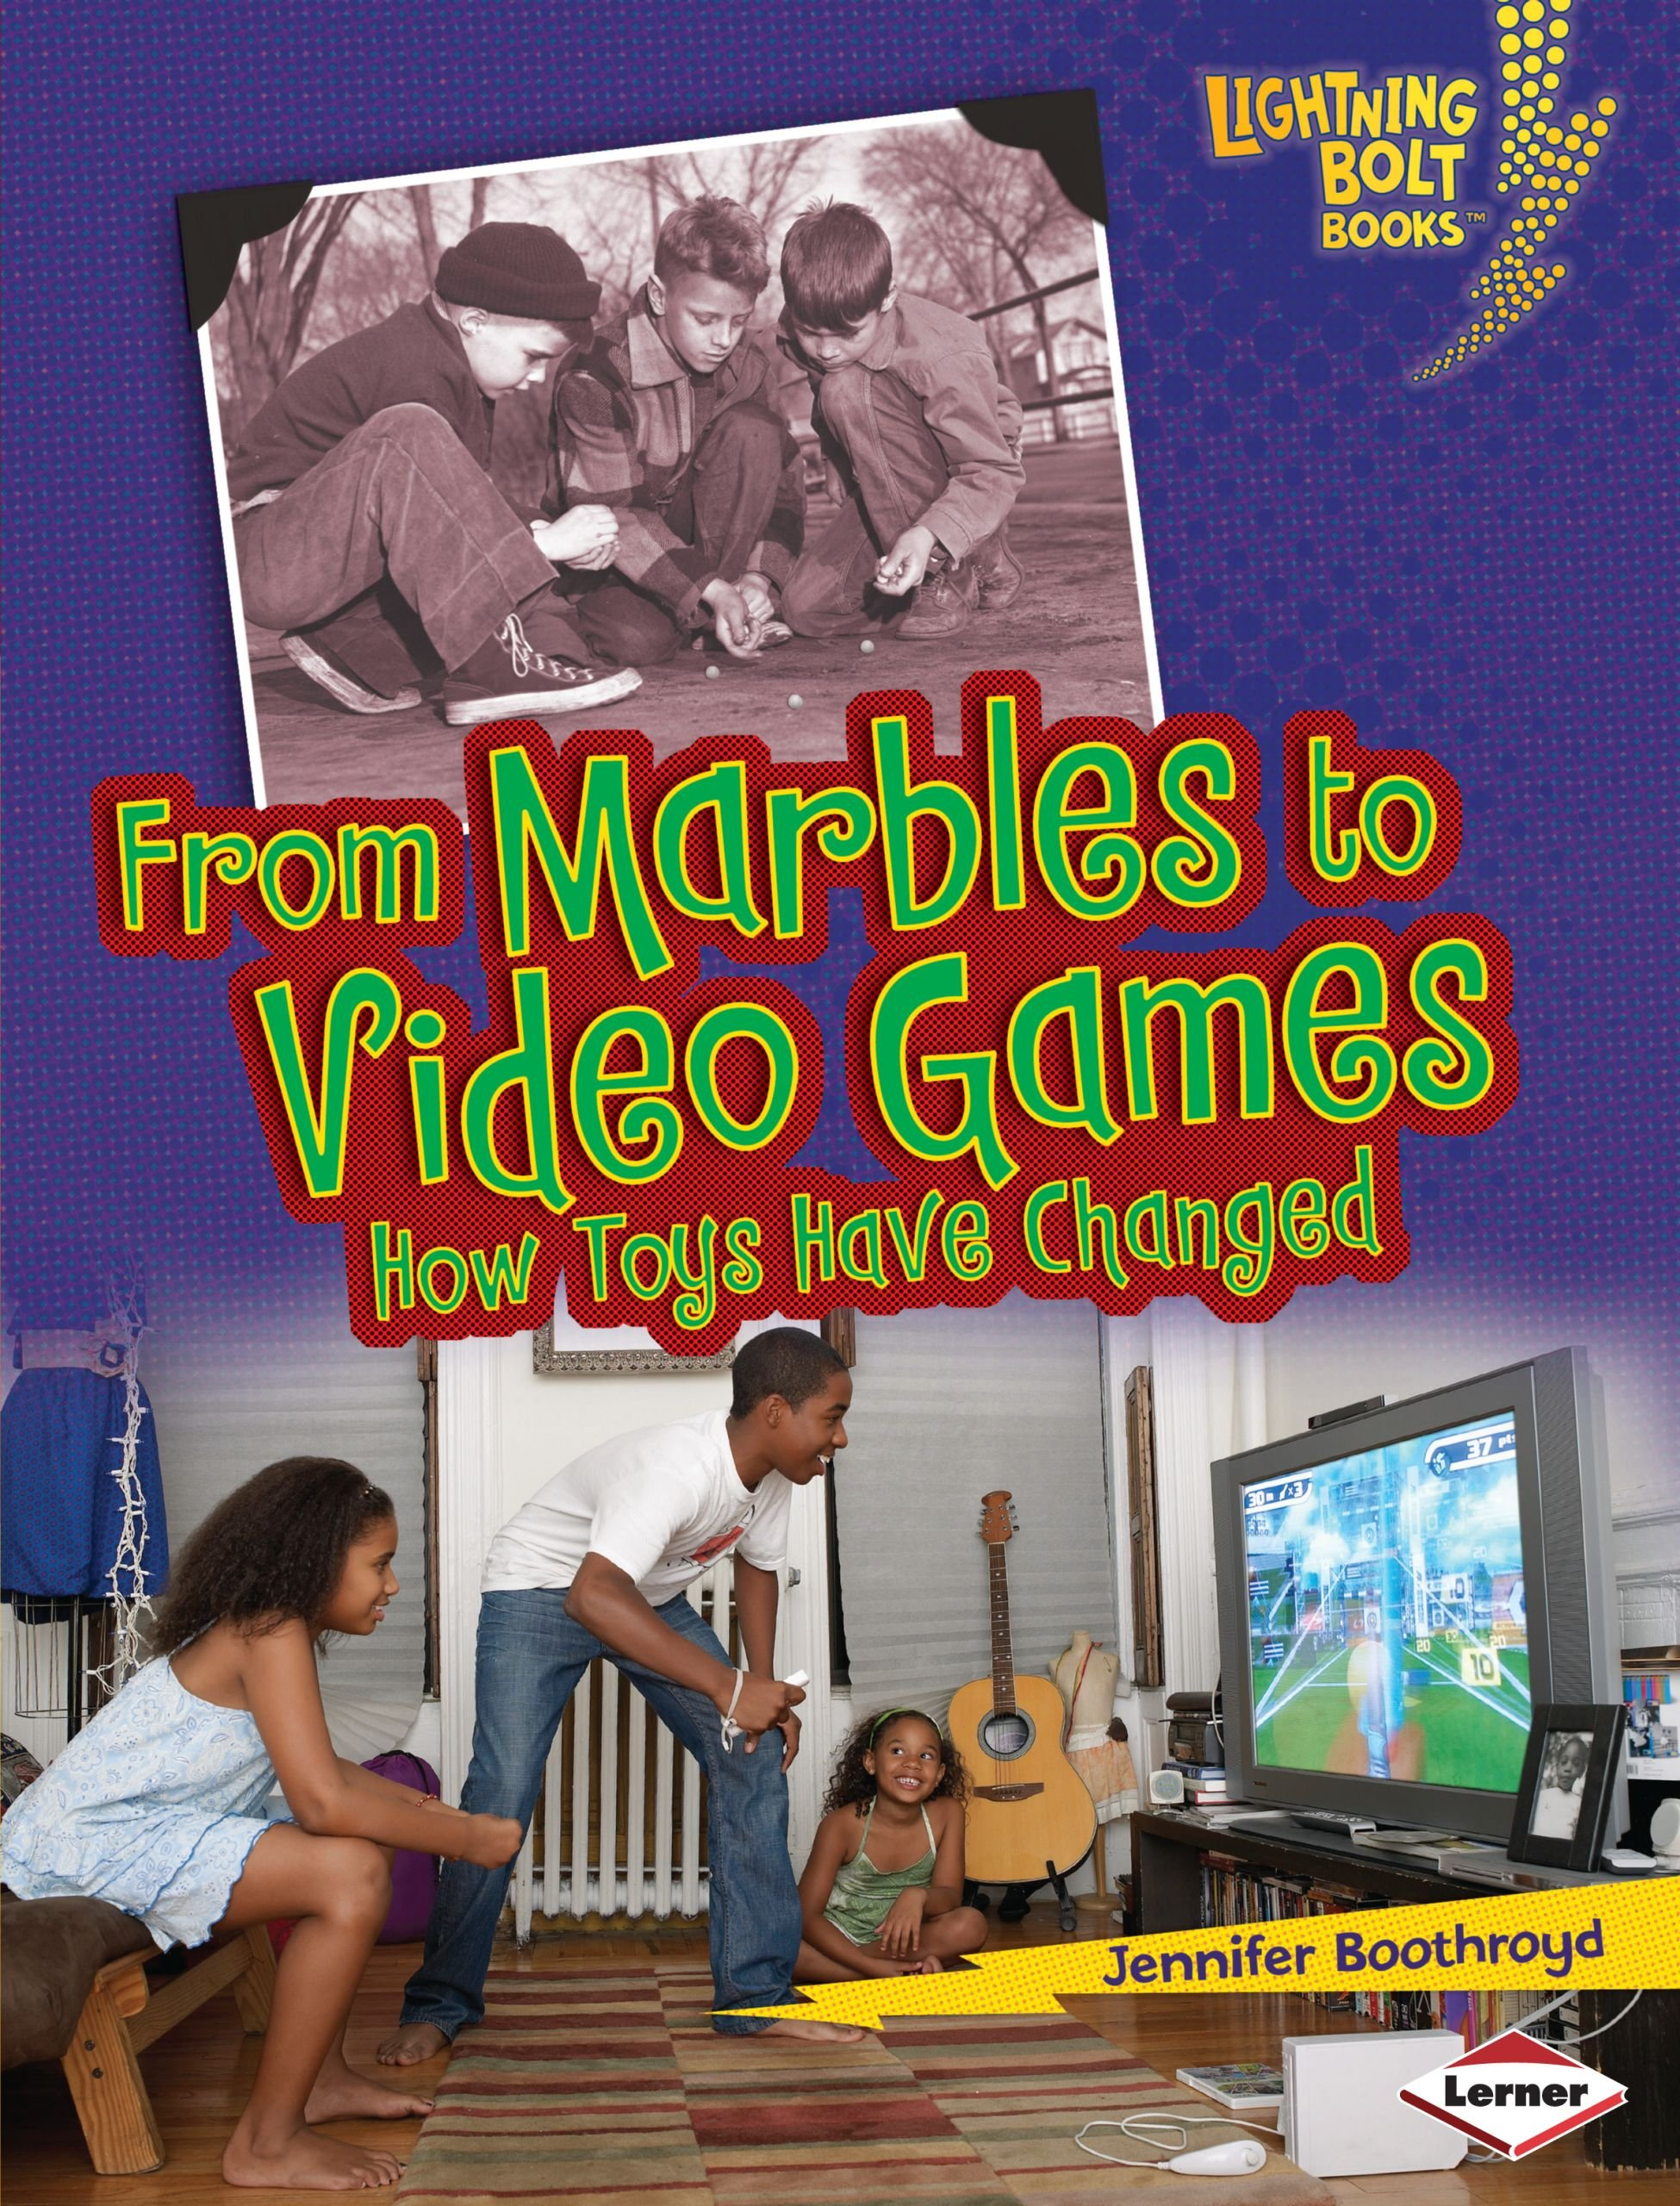 From Marbles to Video Games: How Toys Have Changed (Lightning Bolt Books)